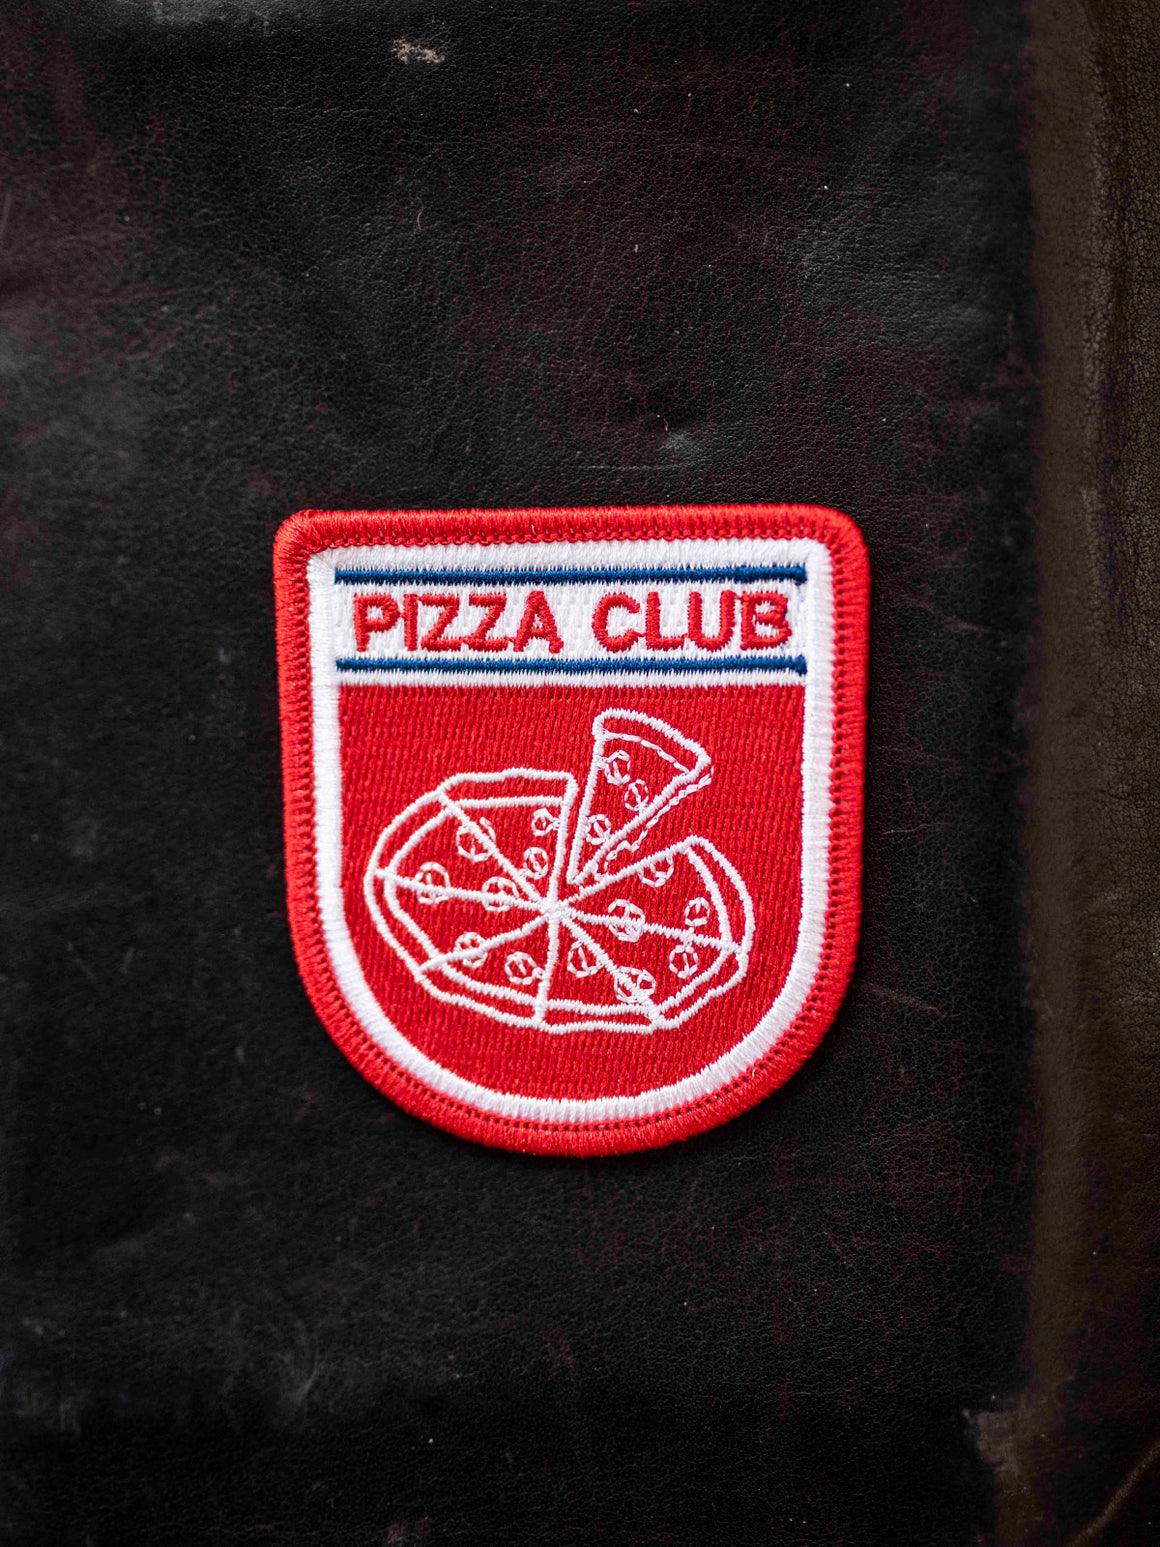 Pizza Club Patch